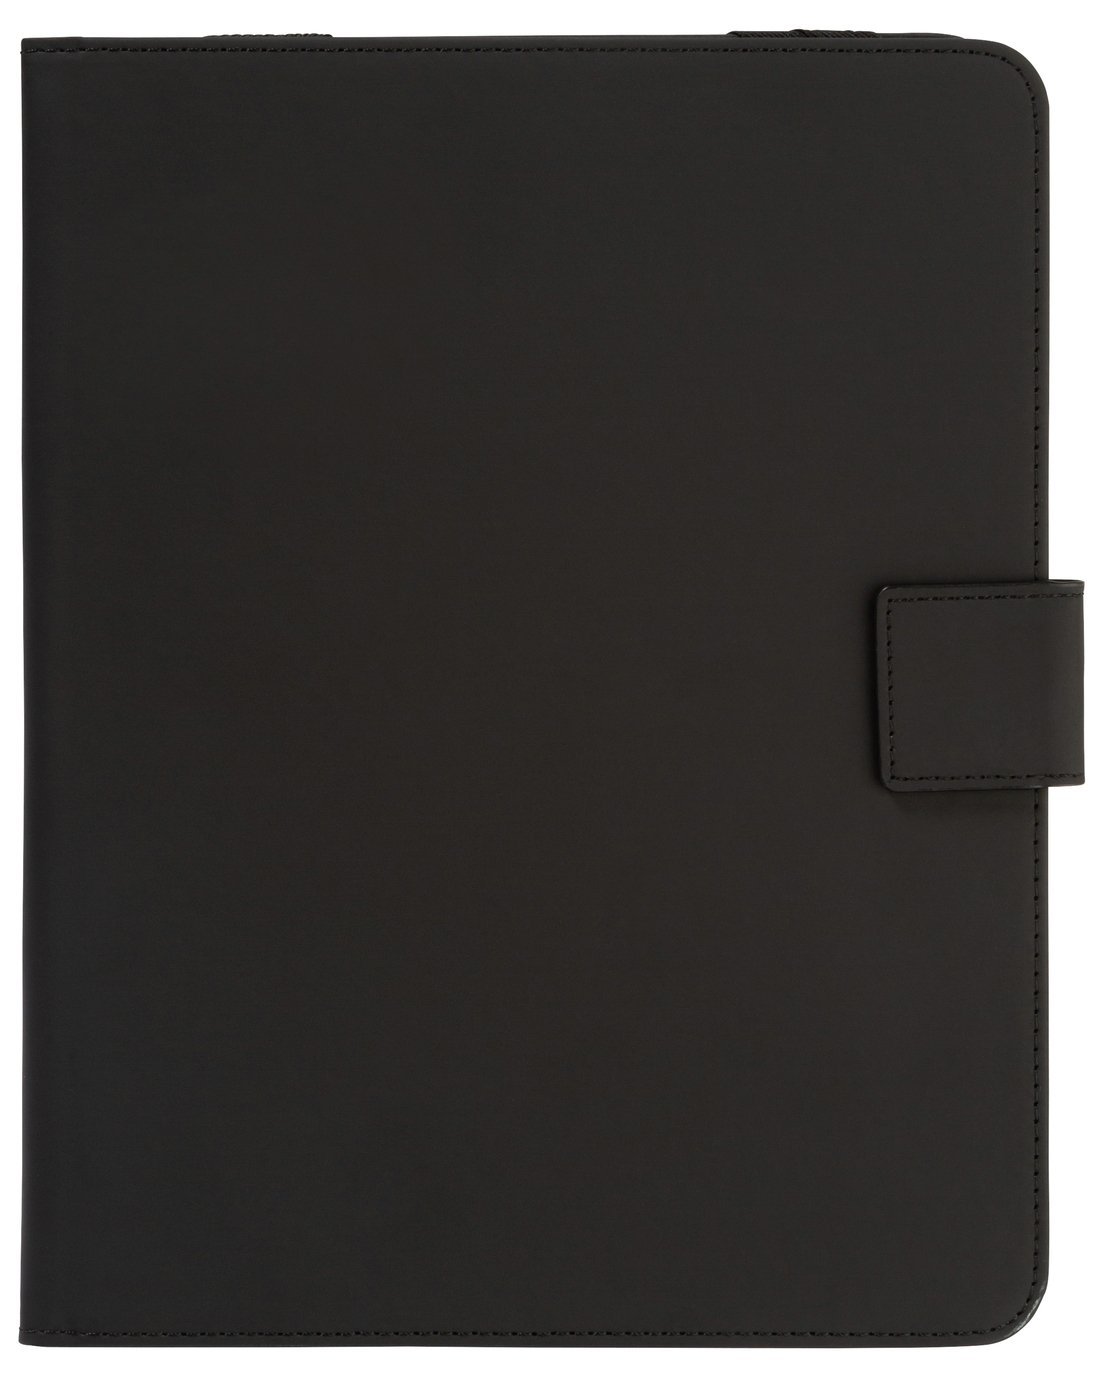 Universal - 9/10 Inch PVC Tablet Case - Black from Universal